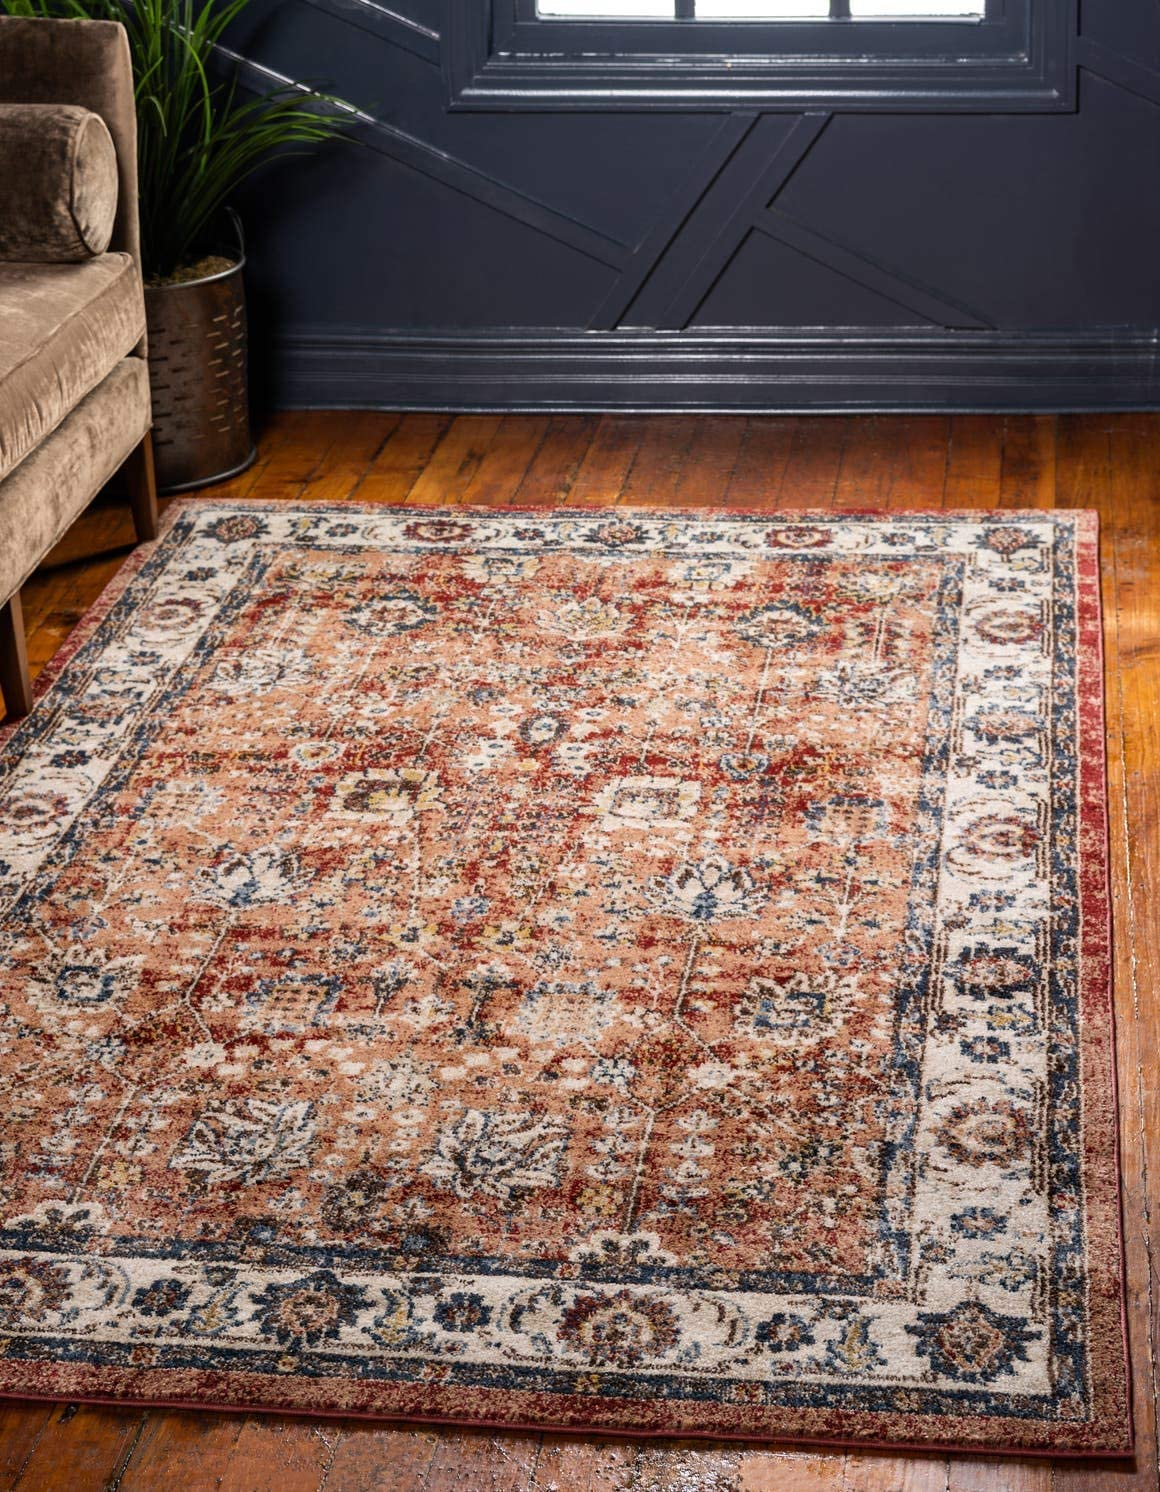 Unique Loom Utopia Collection Traditional Botanical Vintage Warm Tones Terracotta Area Rug 8 0 x 10 0